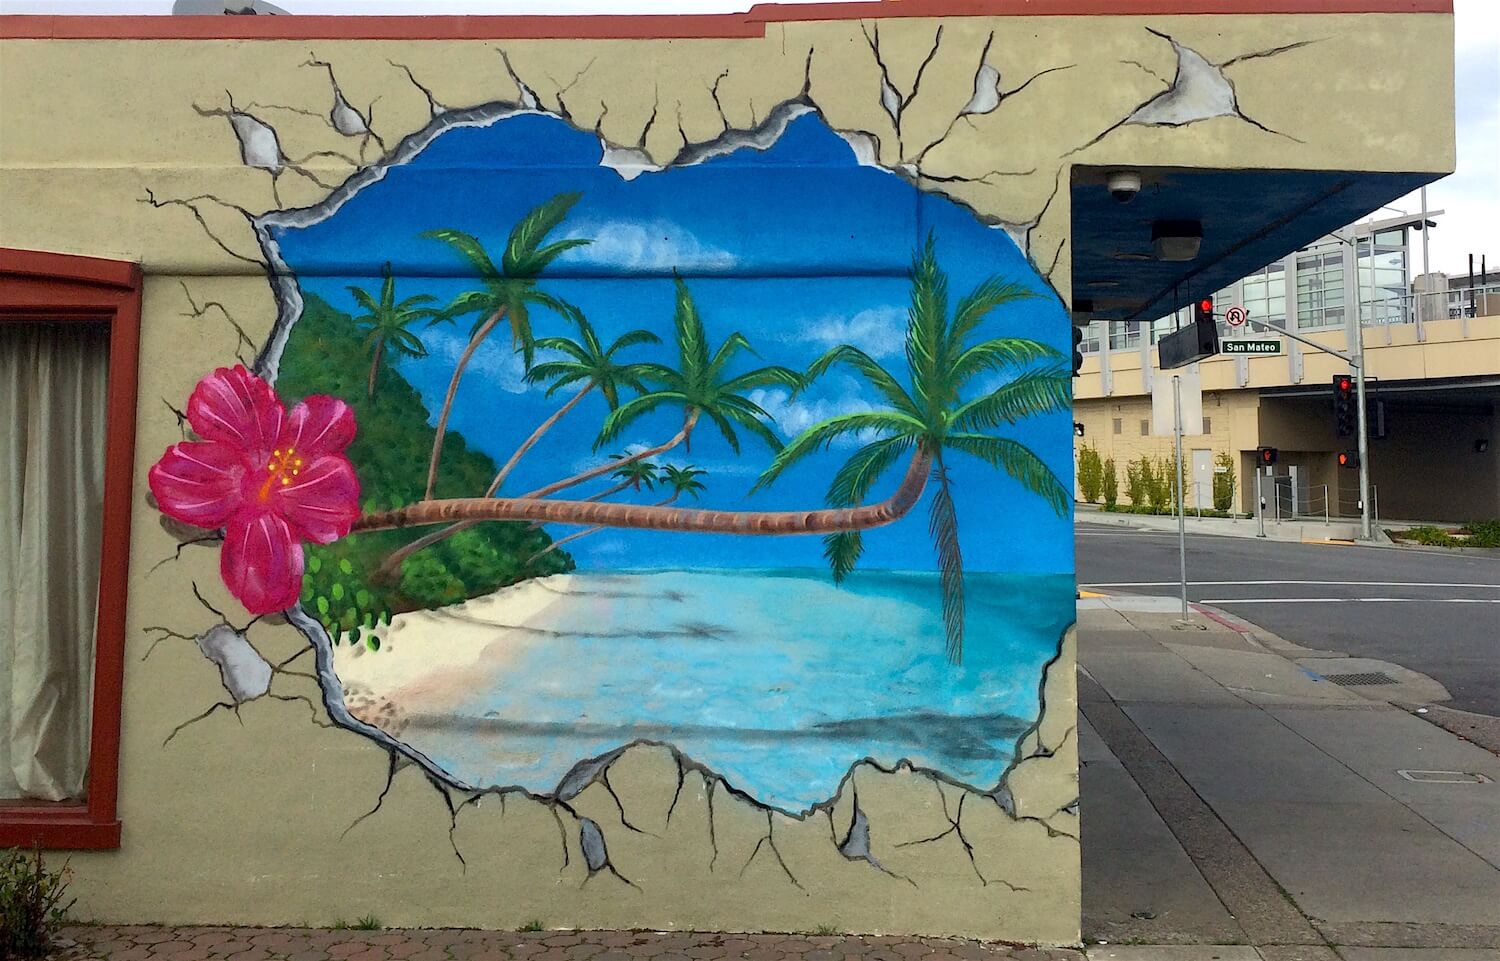 Commissioned Paradise Mural | San Bruno USA, 2016